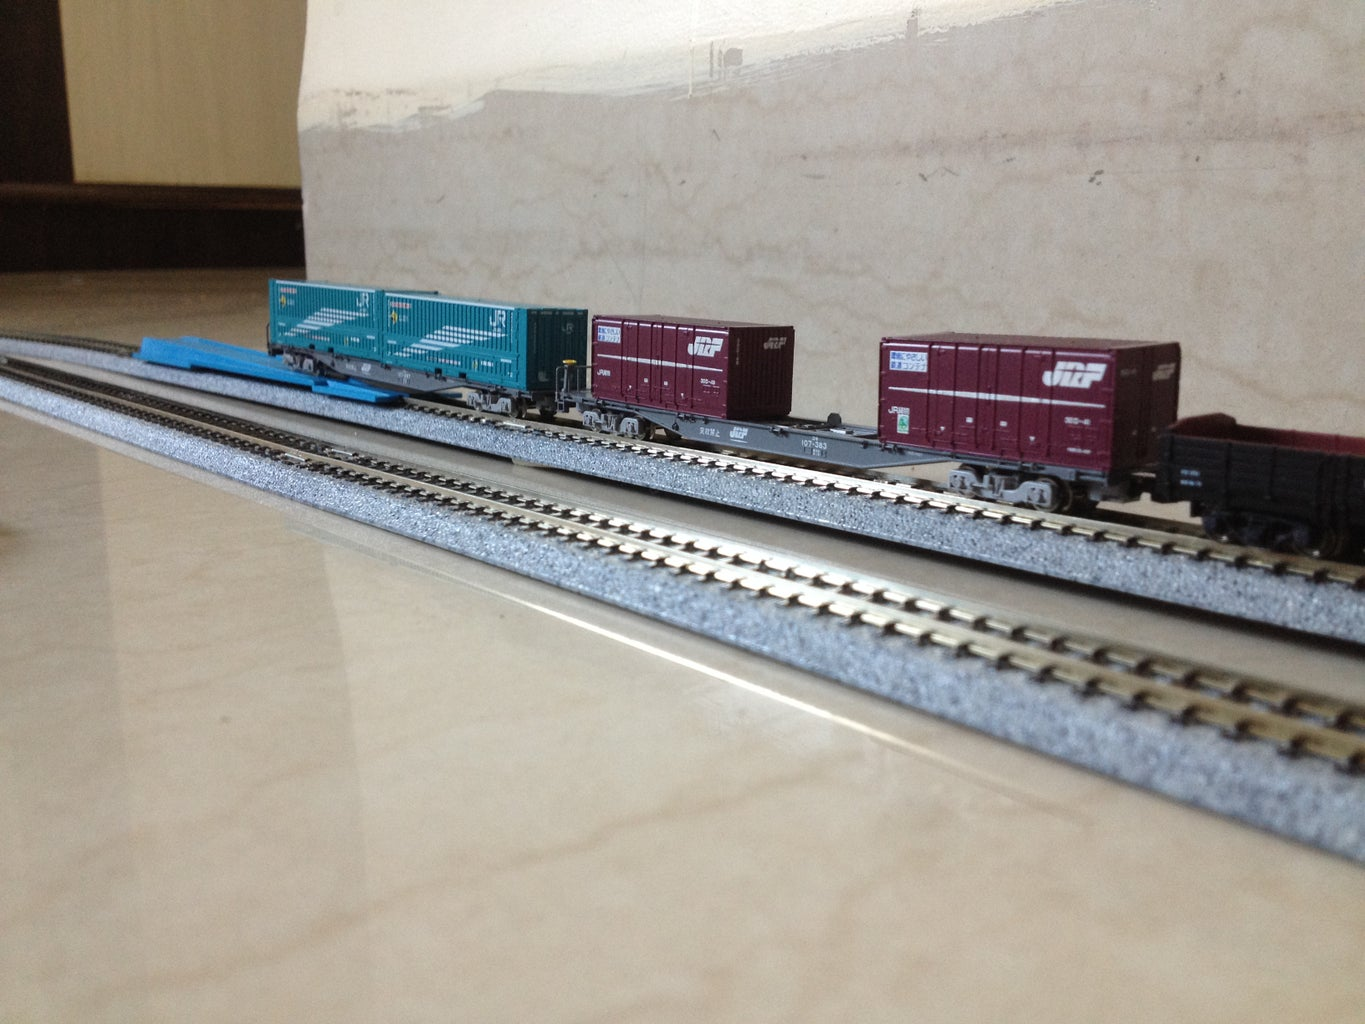 Place the Rolling Stock and the Locomotive on the Tracks